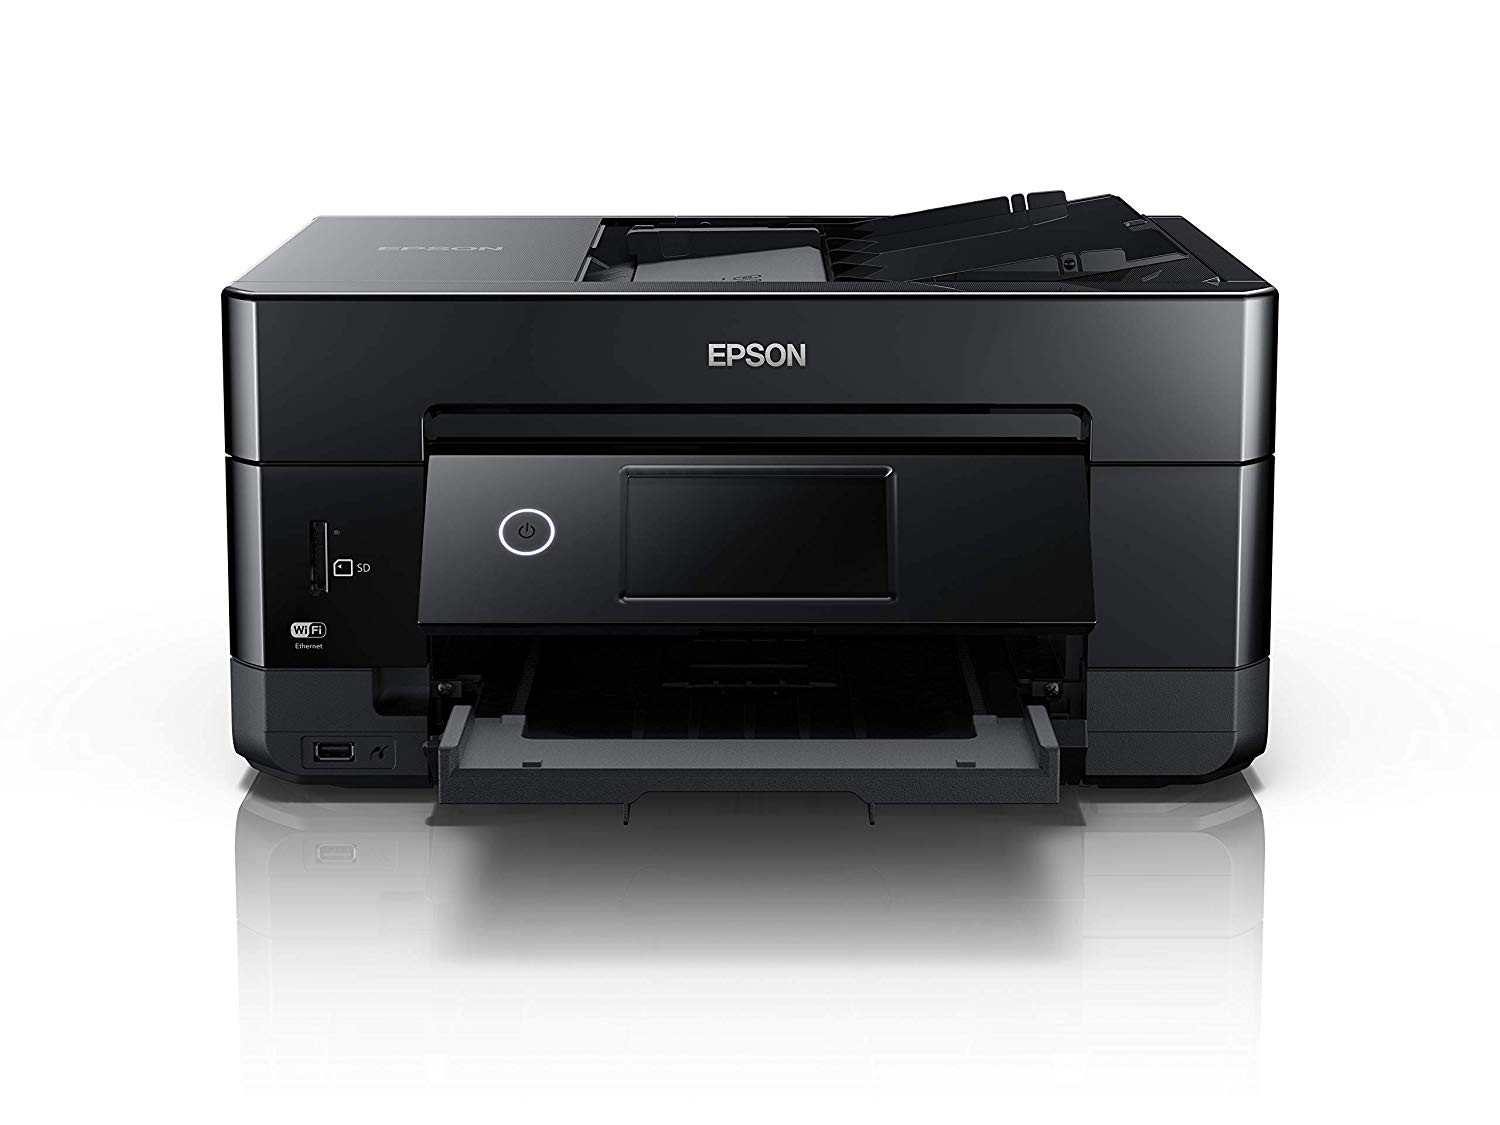 Epson XP7100 A4 All in One Inkjet Printer